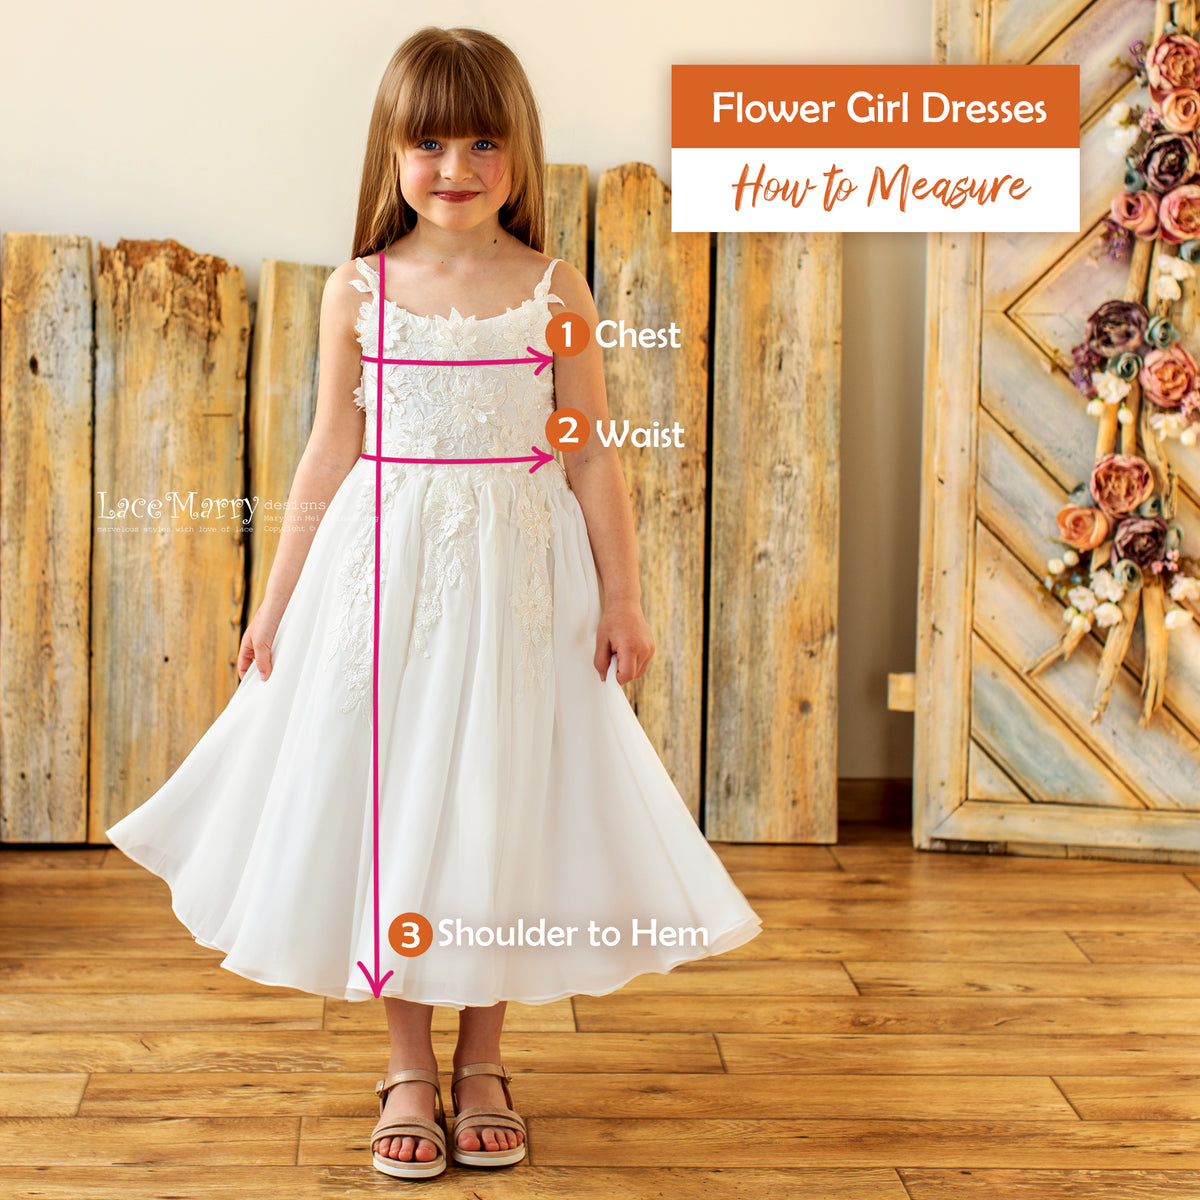 How to Measure a Flower Girl Dress